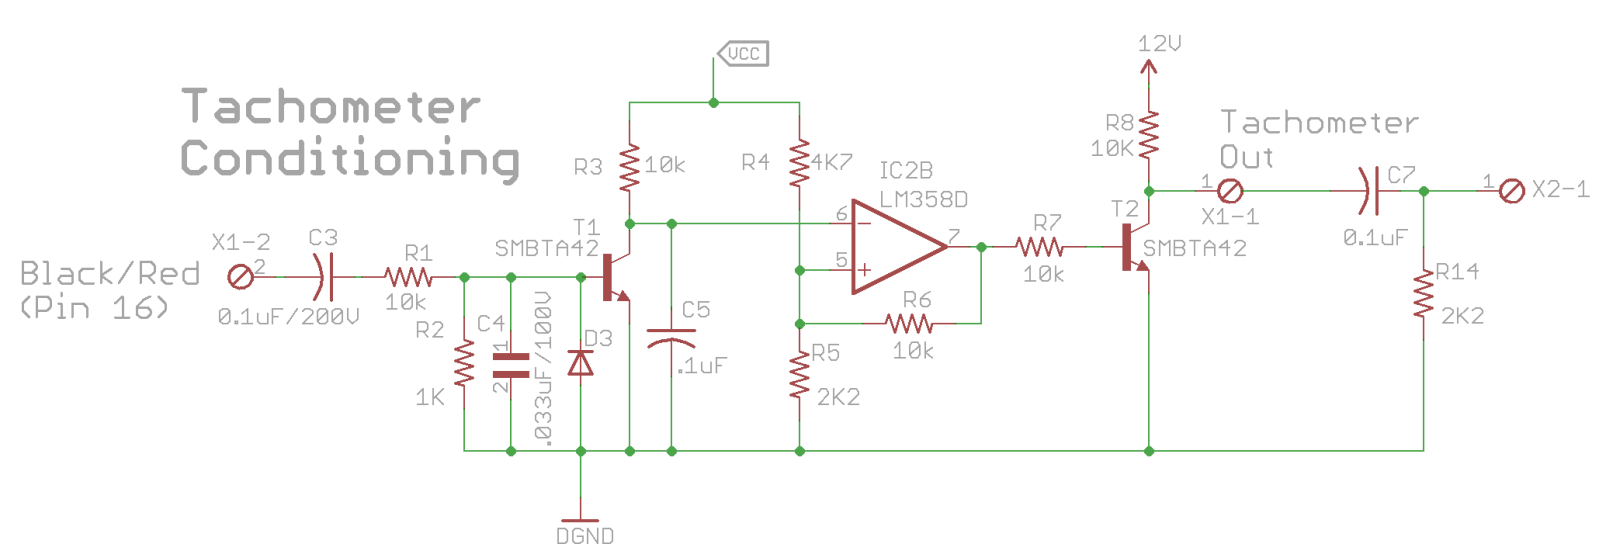 RPM Signal Conditioning Circuit to prevent aftermarket tachometer needle instability 6rorqb